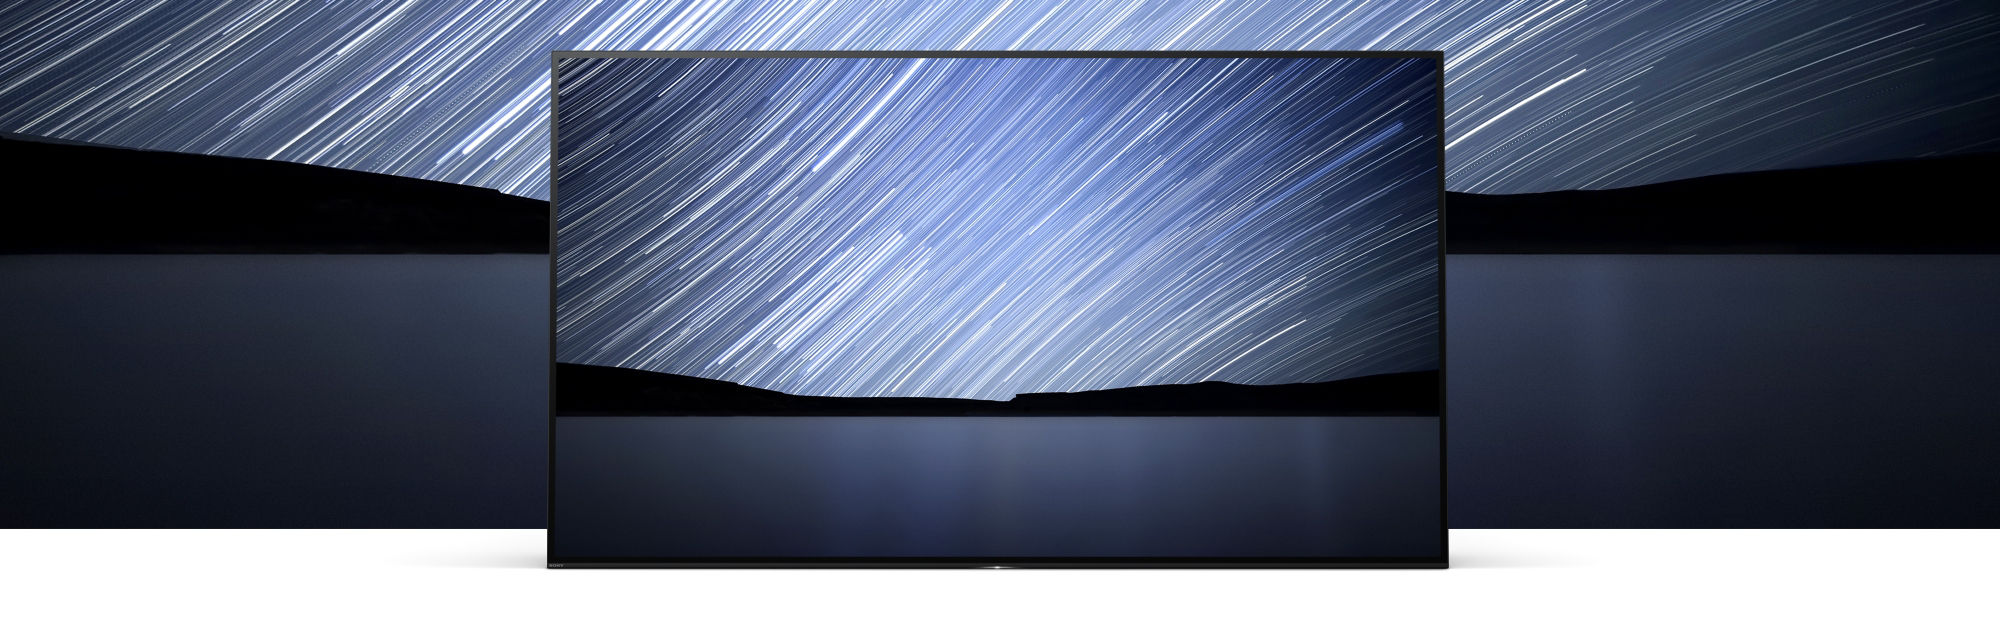 Sony-Xbr-A1E-4K-Oled-Tv-Cover